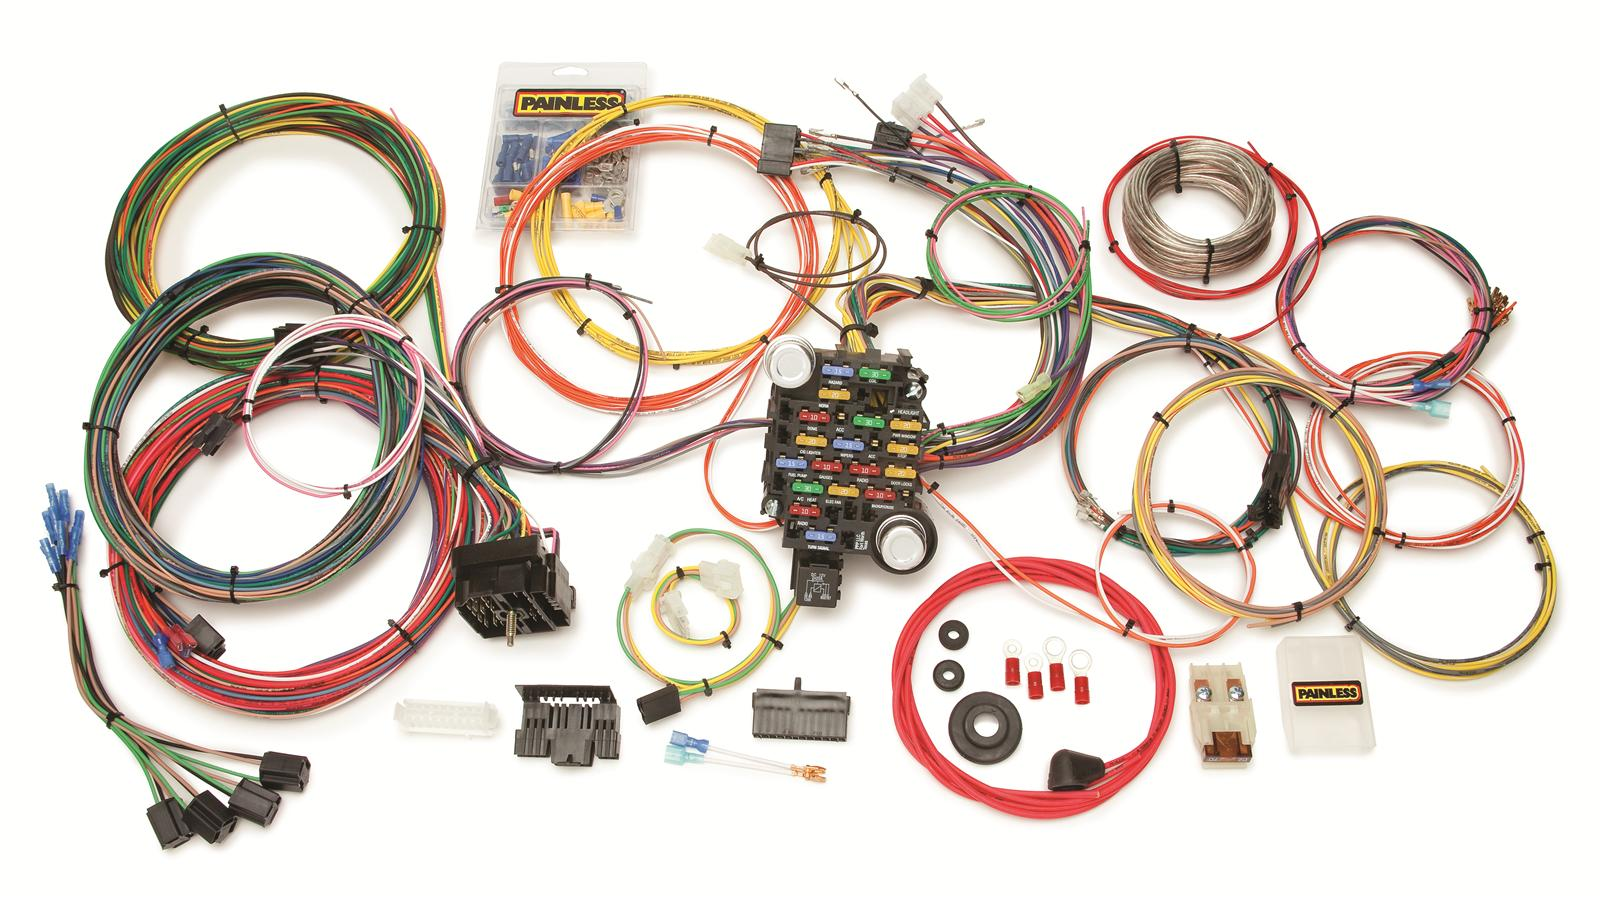 Painless Gm Column Wiring Diagram Painless Performance Gmc Chevy Truck Harnesses 10205